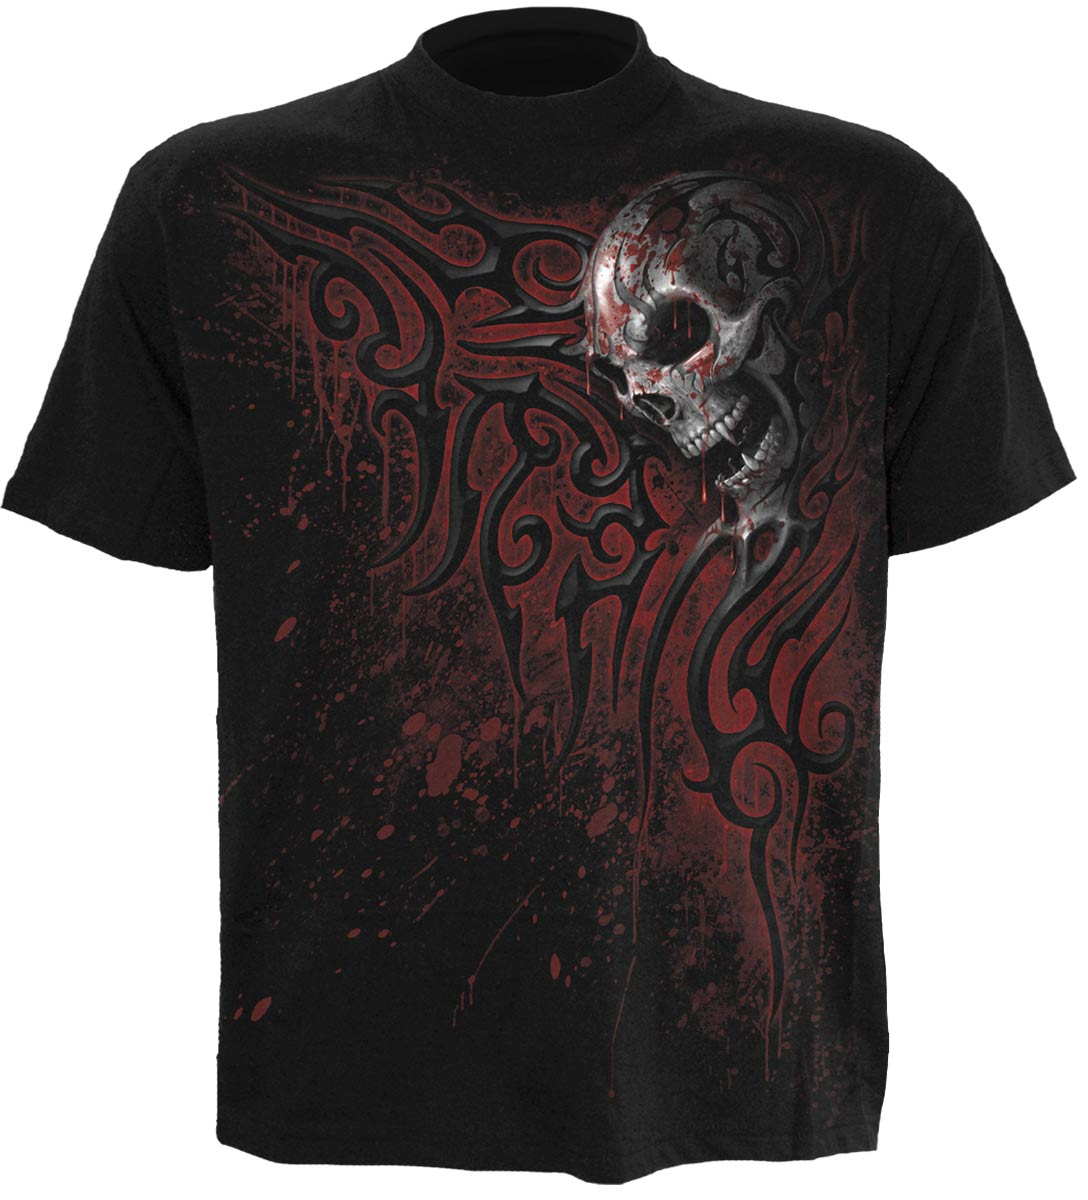 SPIRAL Death Blood T-Shirt schwarz M015M101